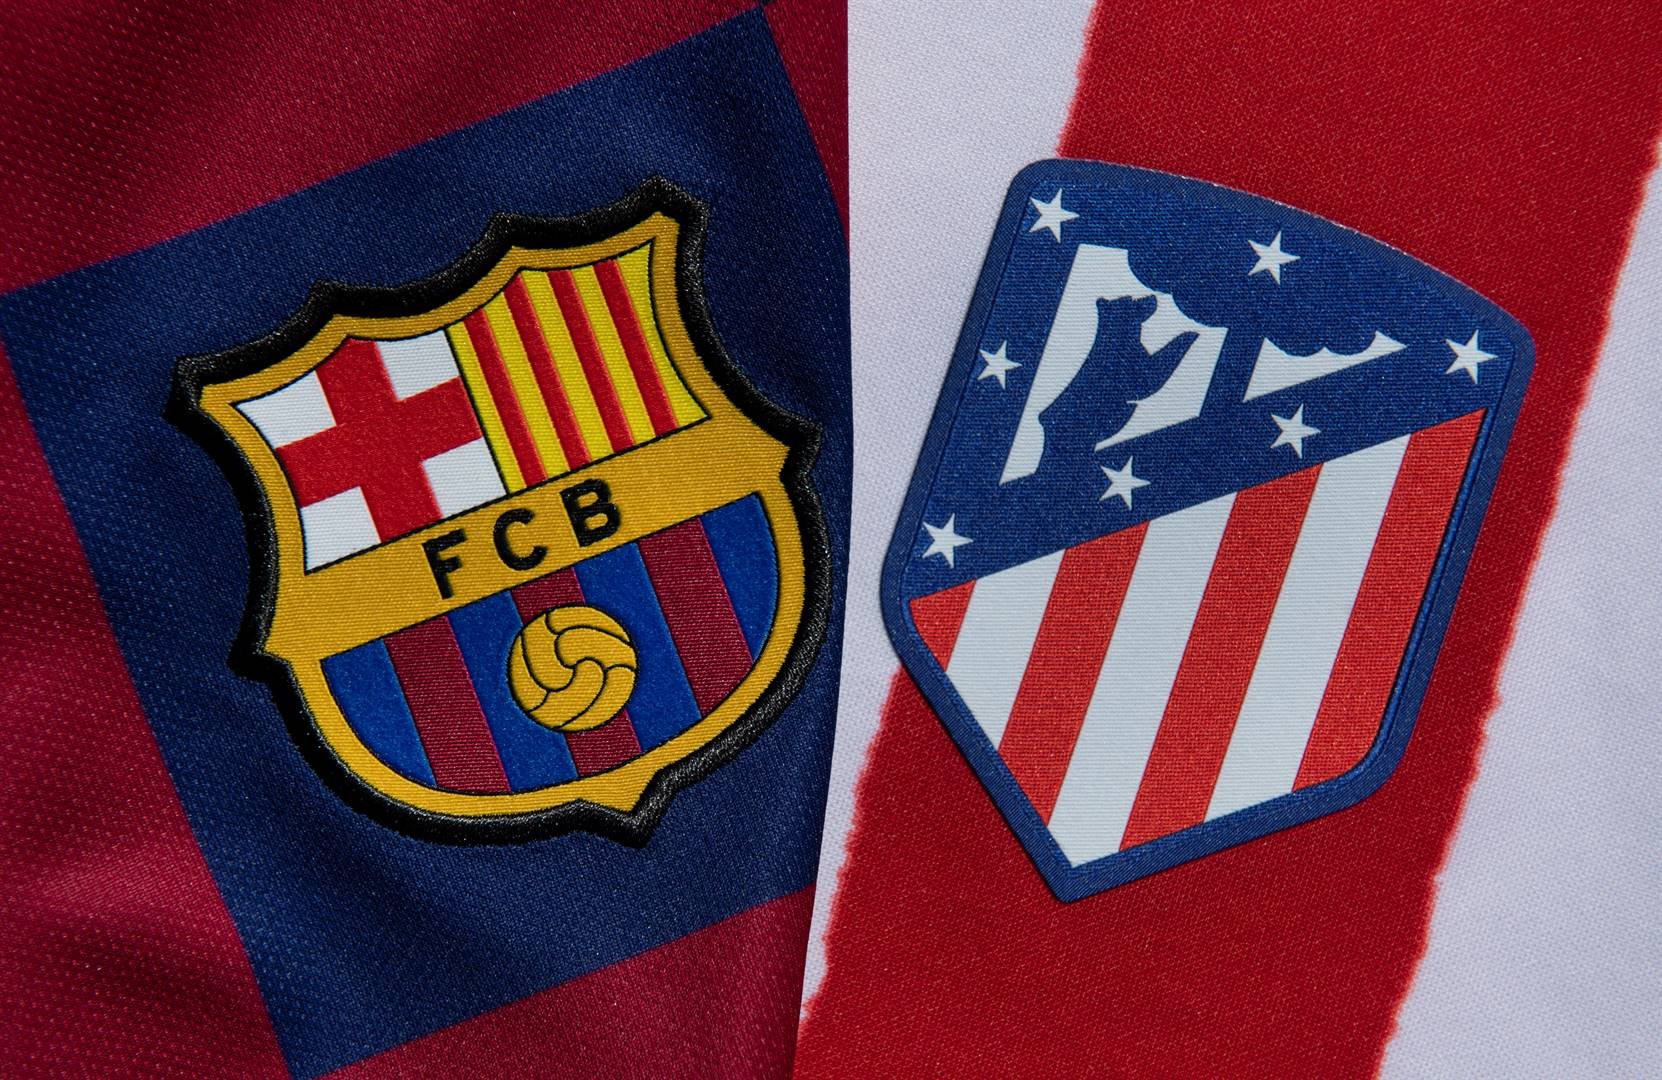 Barcelona and Atlético Madrid will face off in a top-of-the-table clash at Camp Nou on Saturday. Photo: Visionhaus / Getty Images